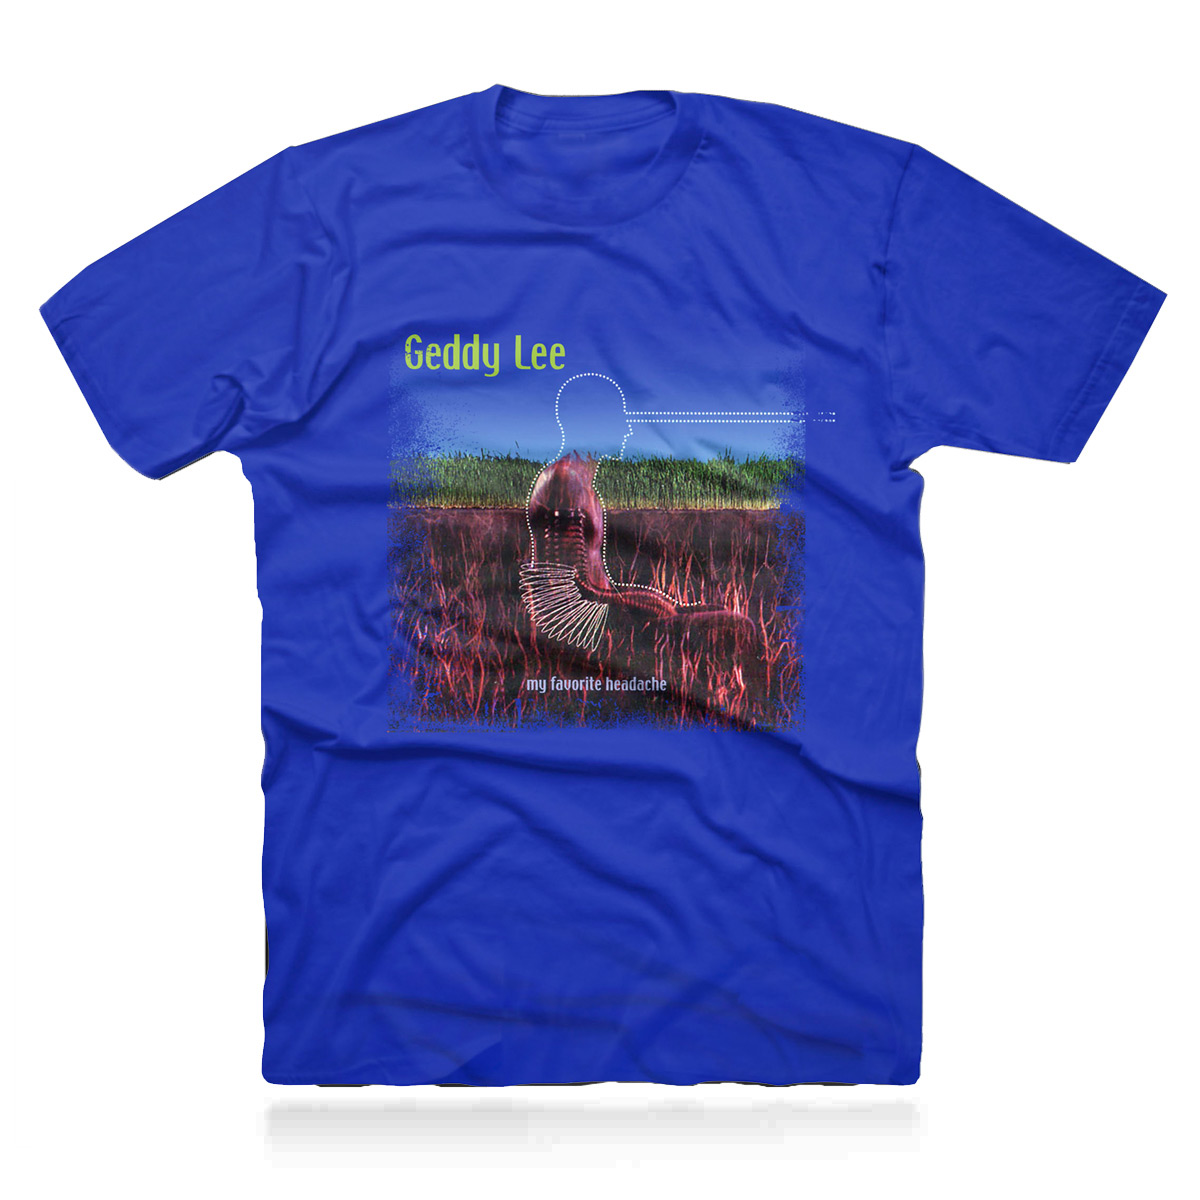 Geddy Lee Favorite Blue Tee